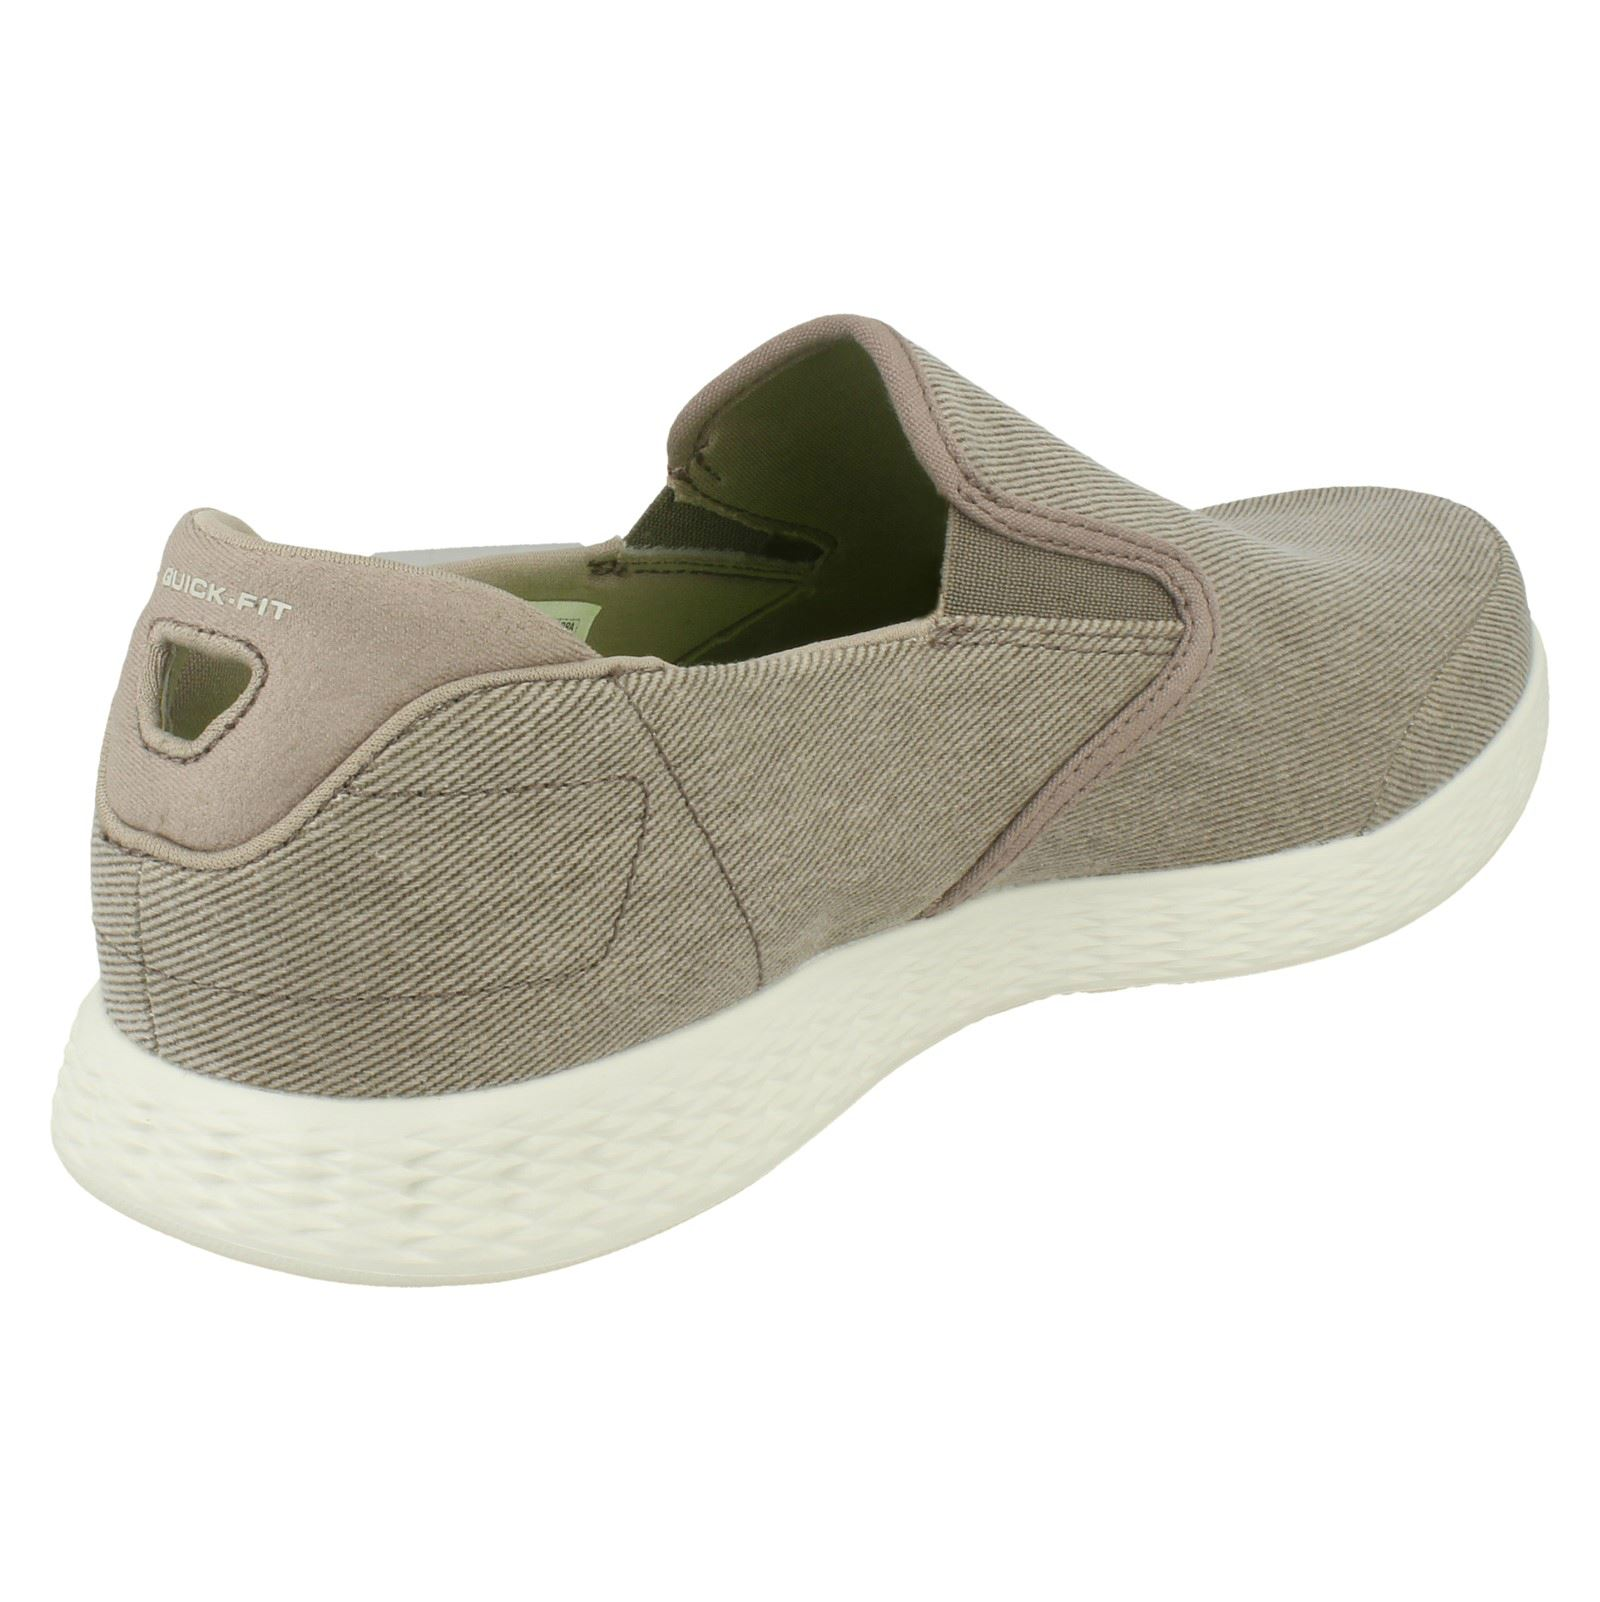 Men-Skechers-On-The-Go-Glide-Victorious-53781-Trainers thumbnail 7